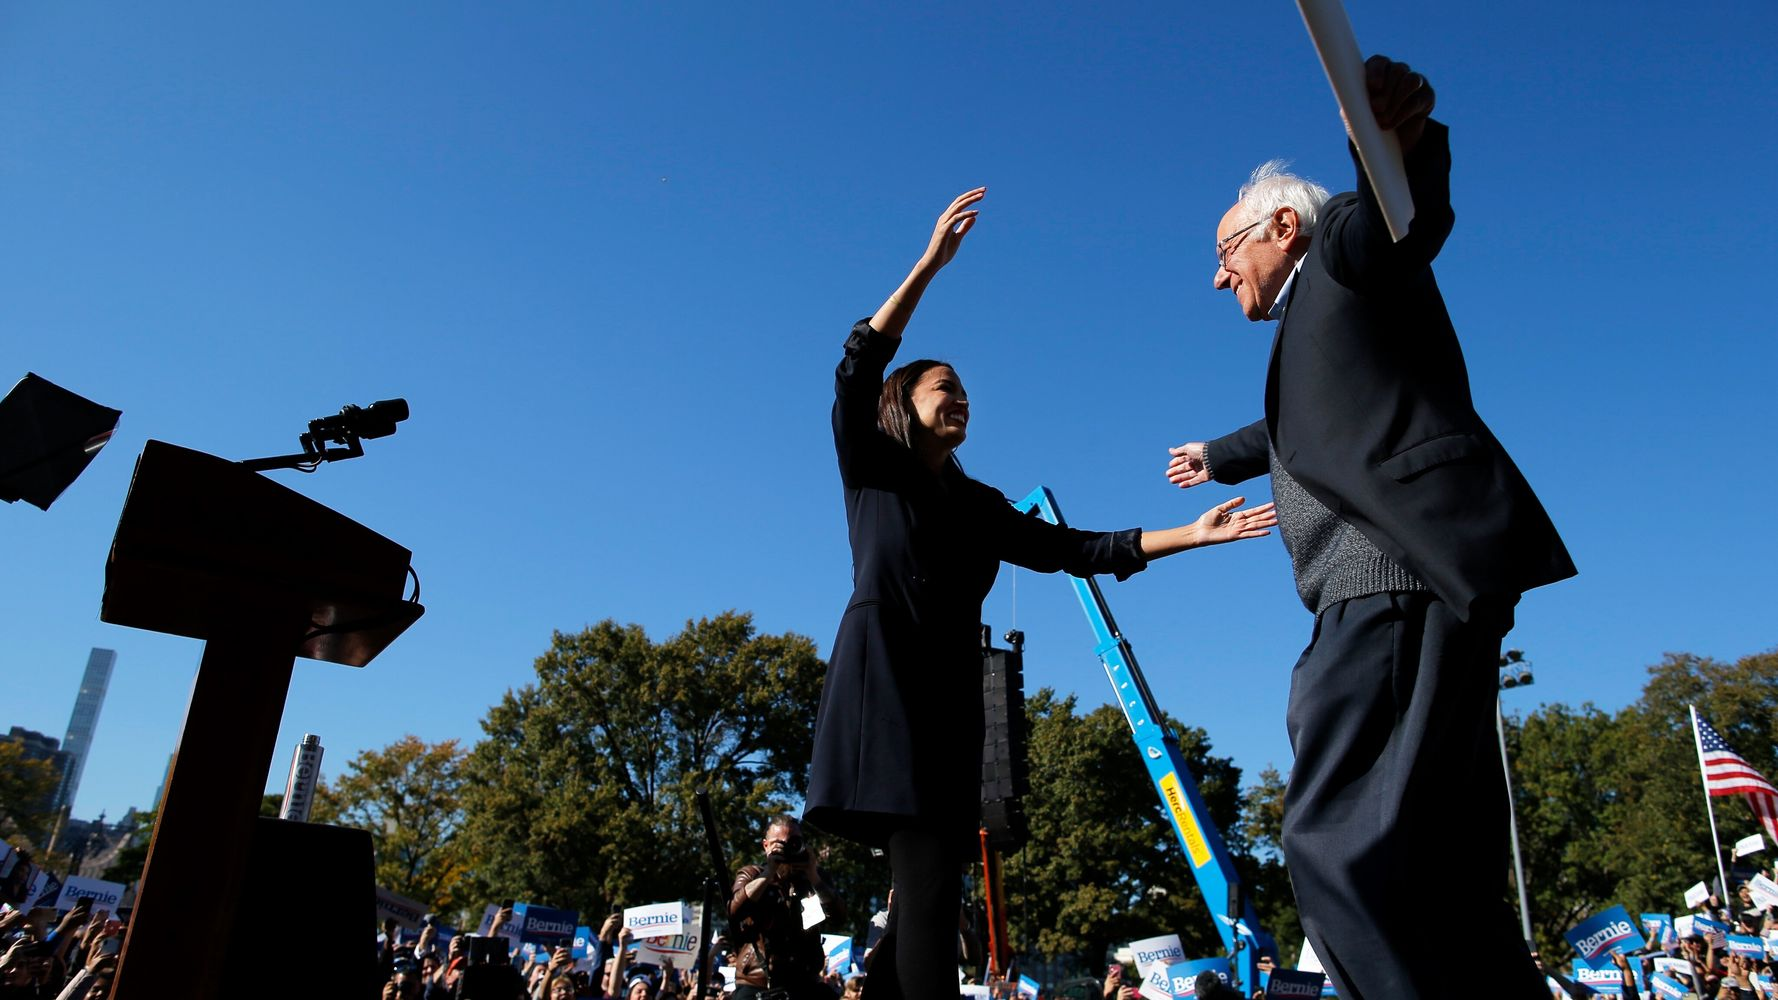 Westlake Legal Group 5dab7668210000621bad34ee Over 20,000 Join Bernie Sanders For Post-Heart Attack Campaign Relaunch In Queens